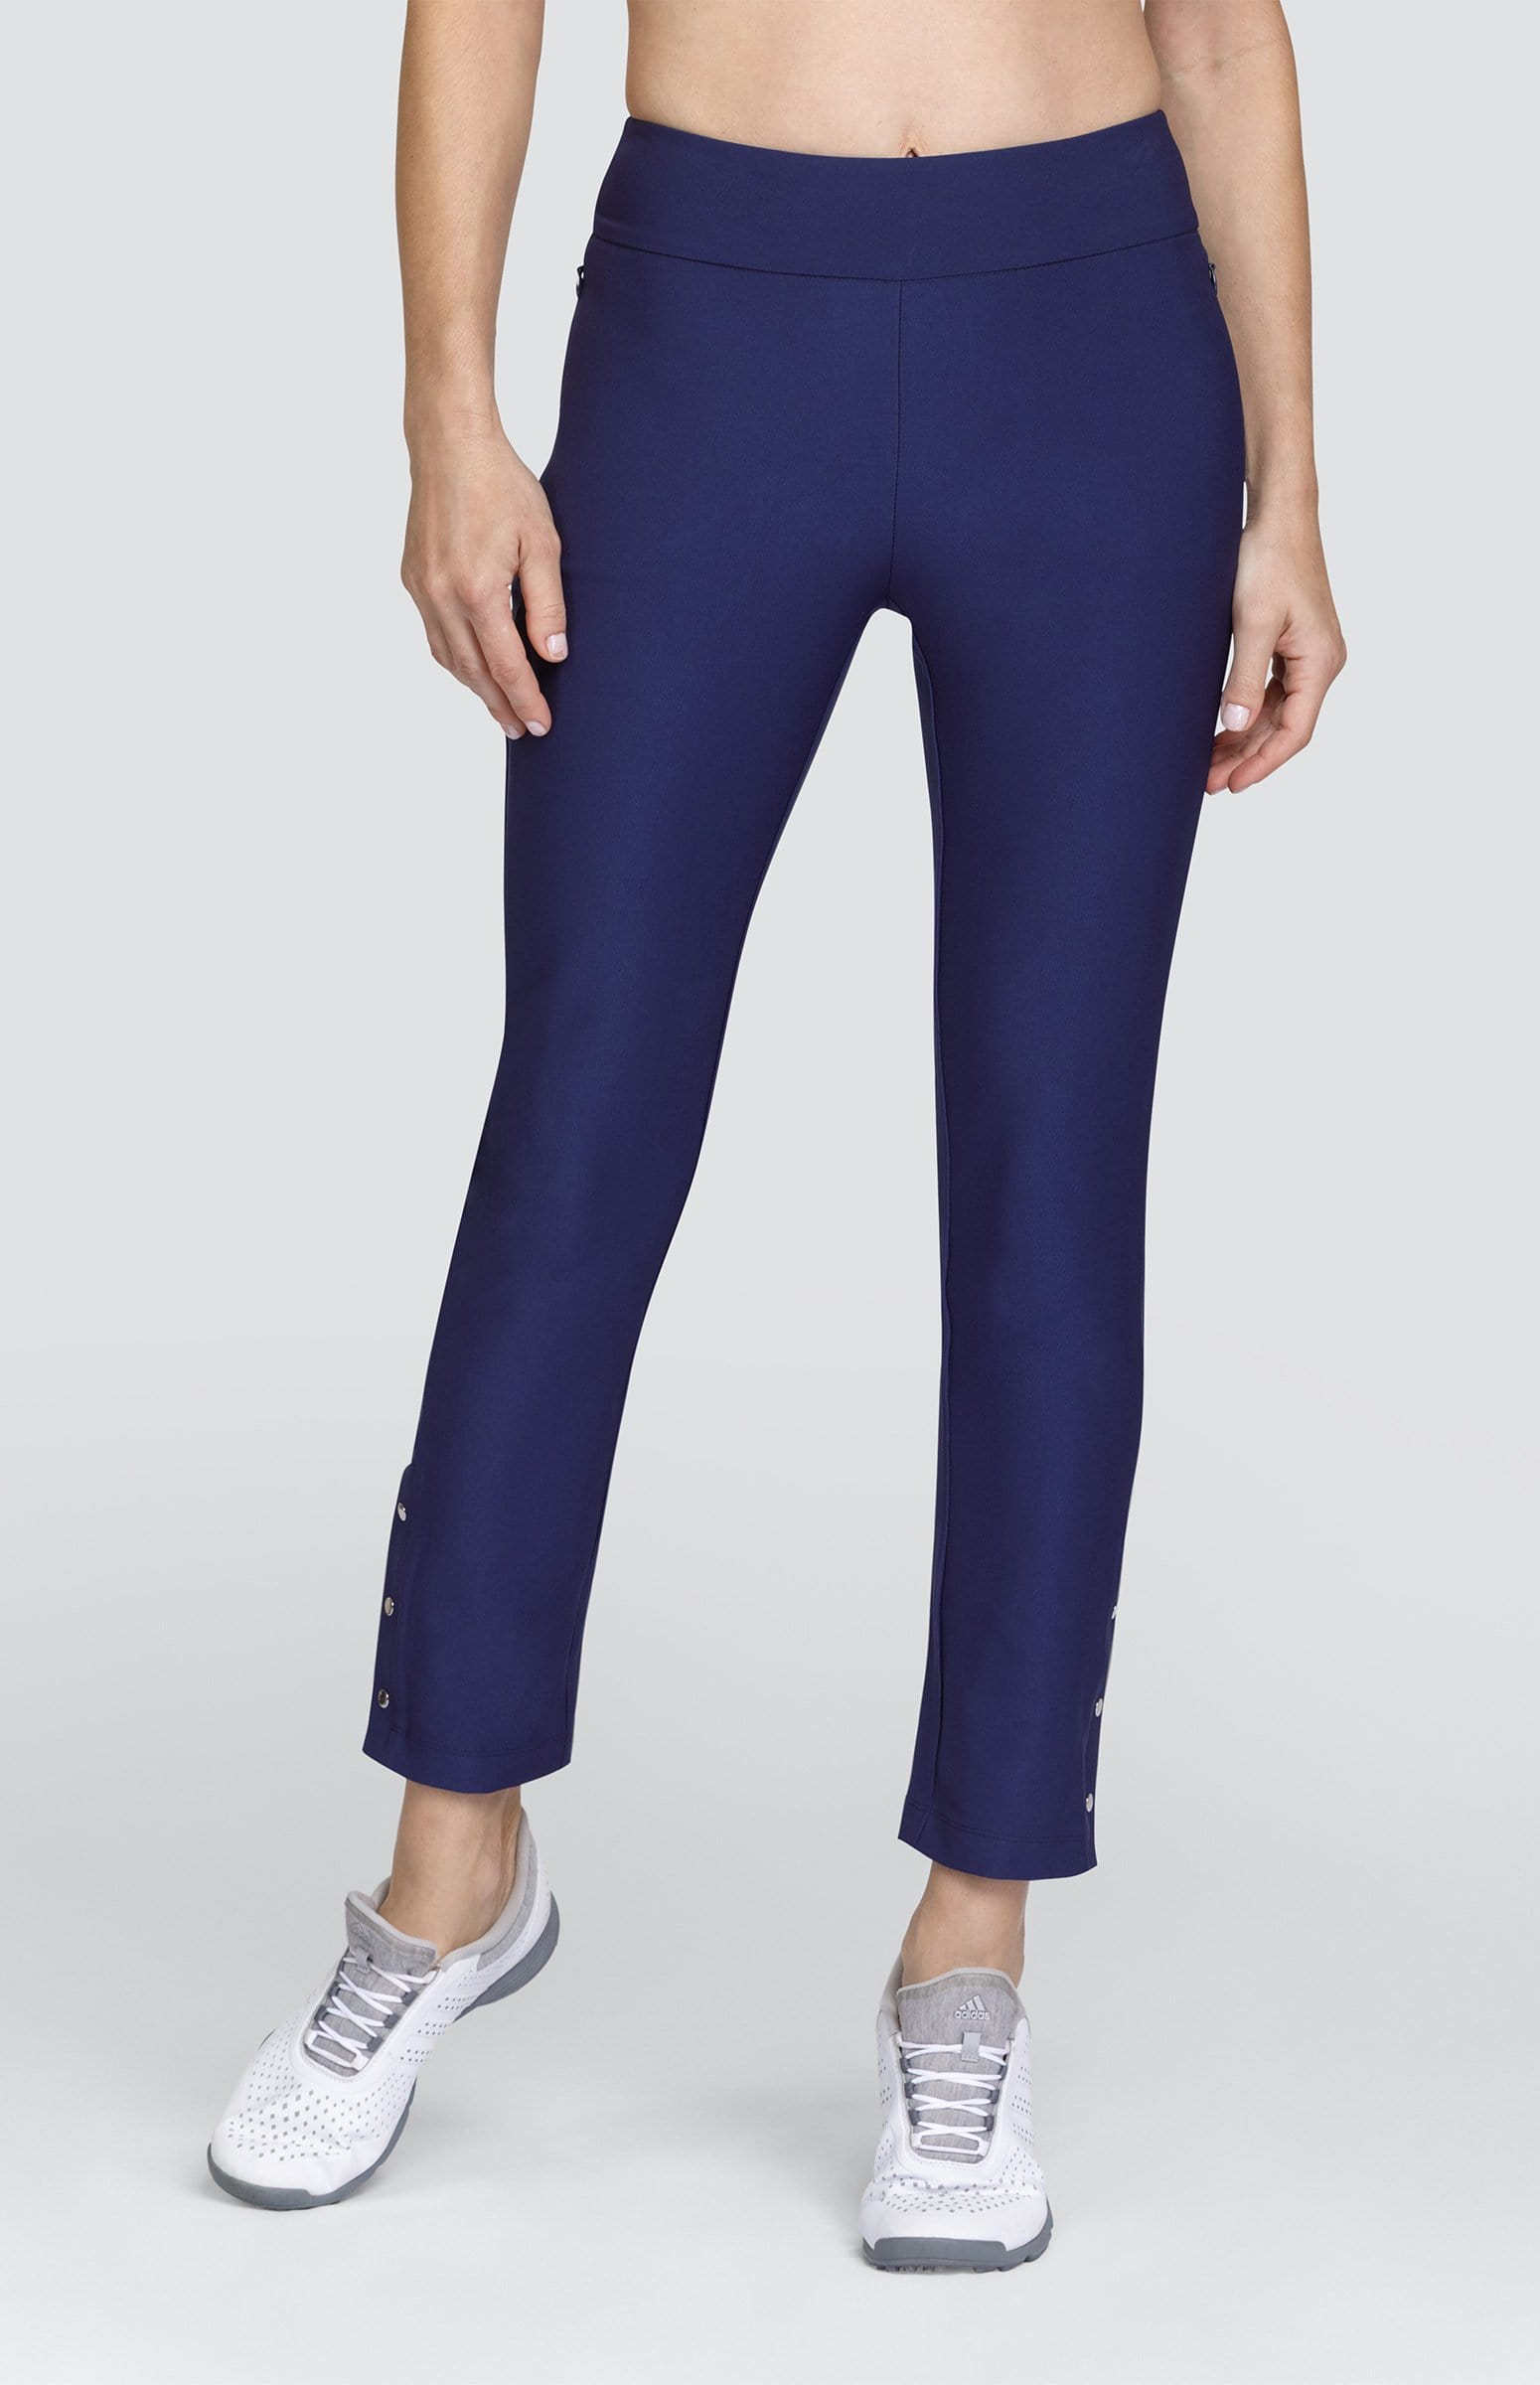 Patricia Pant - Navy Blue